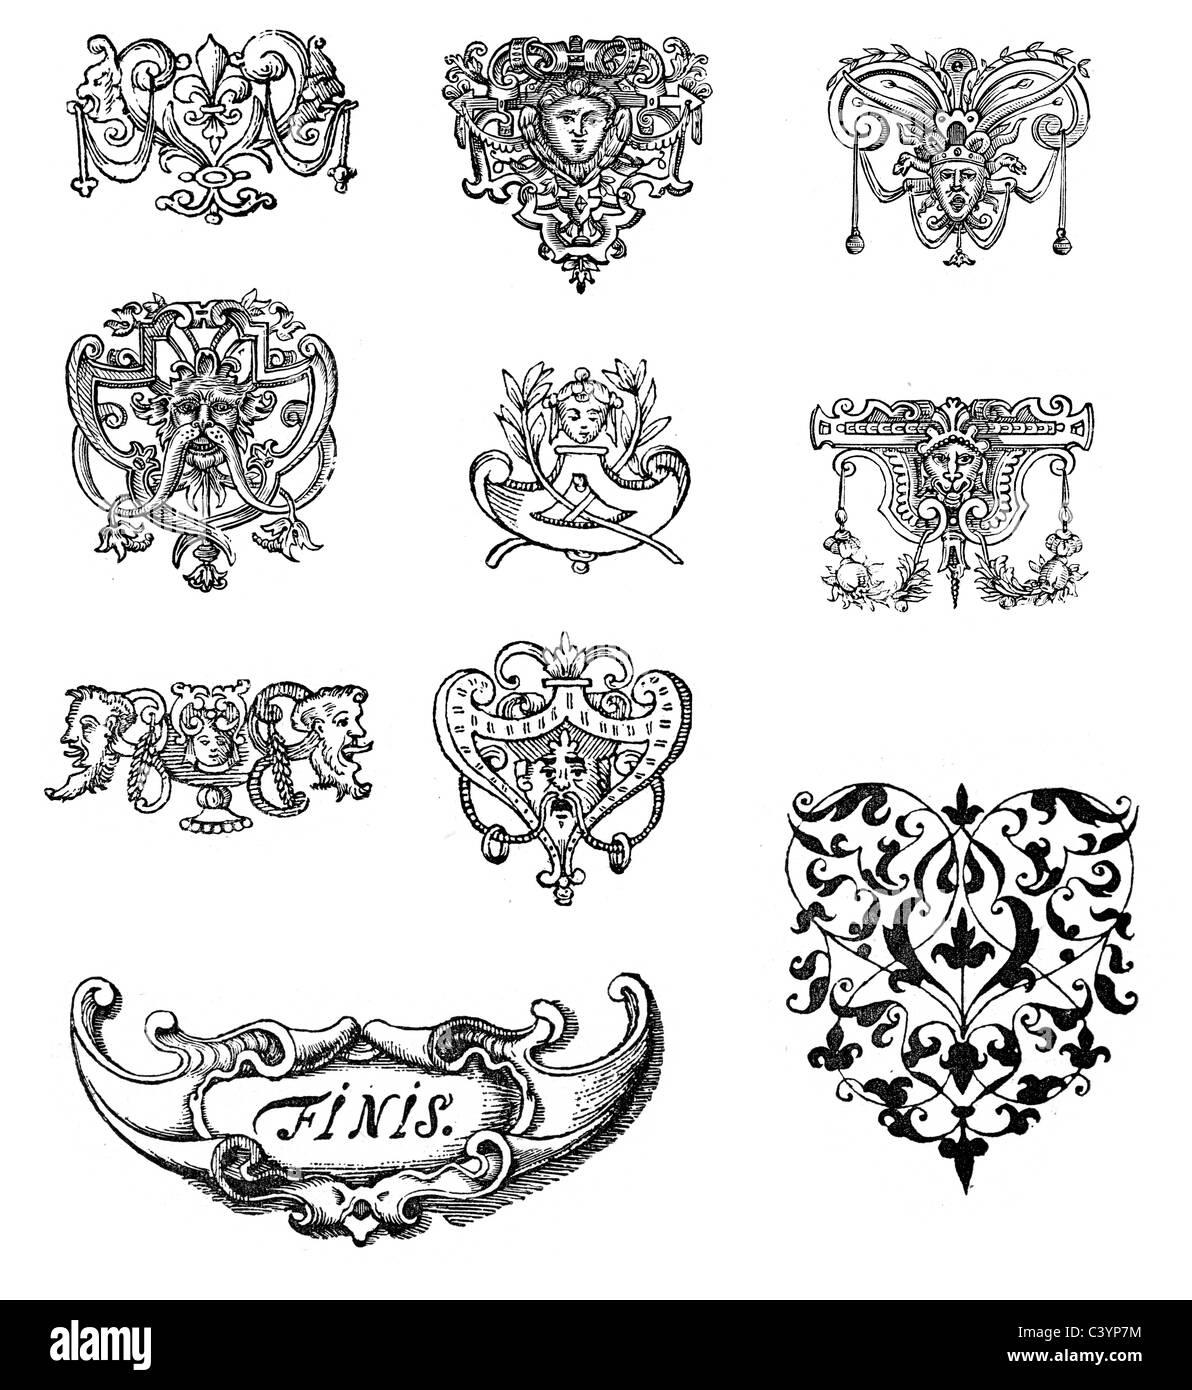 Retro style design elements with a Victorian or Medieval Style